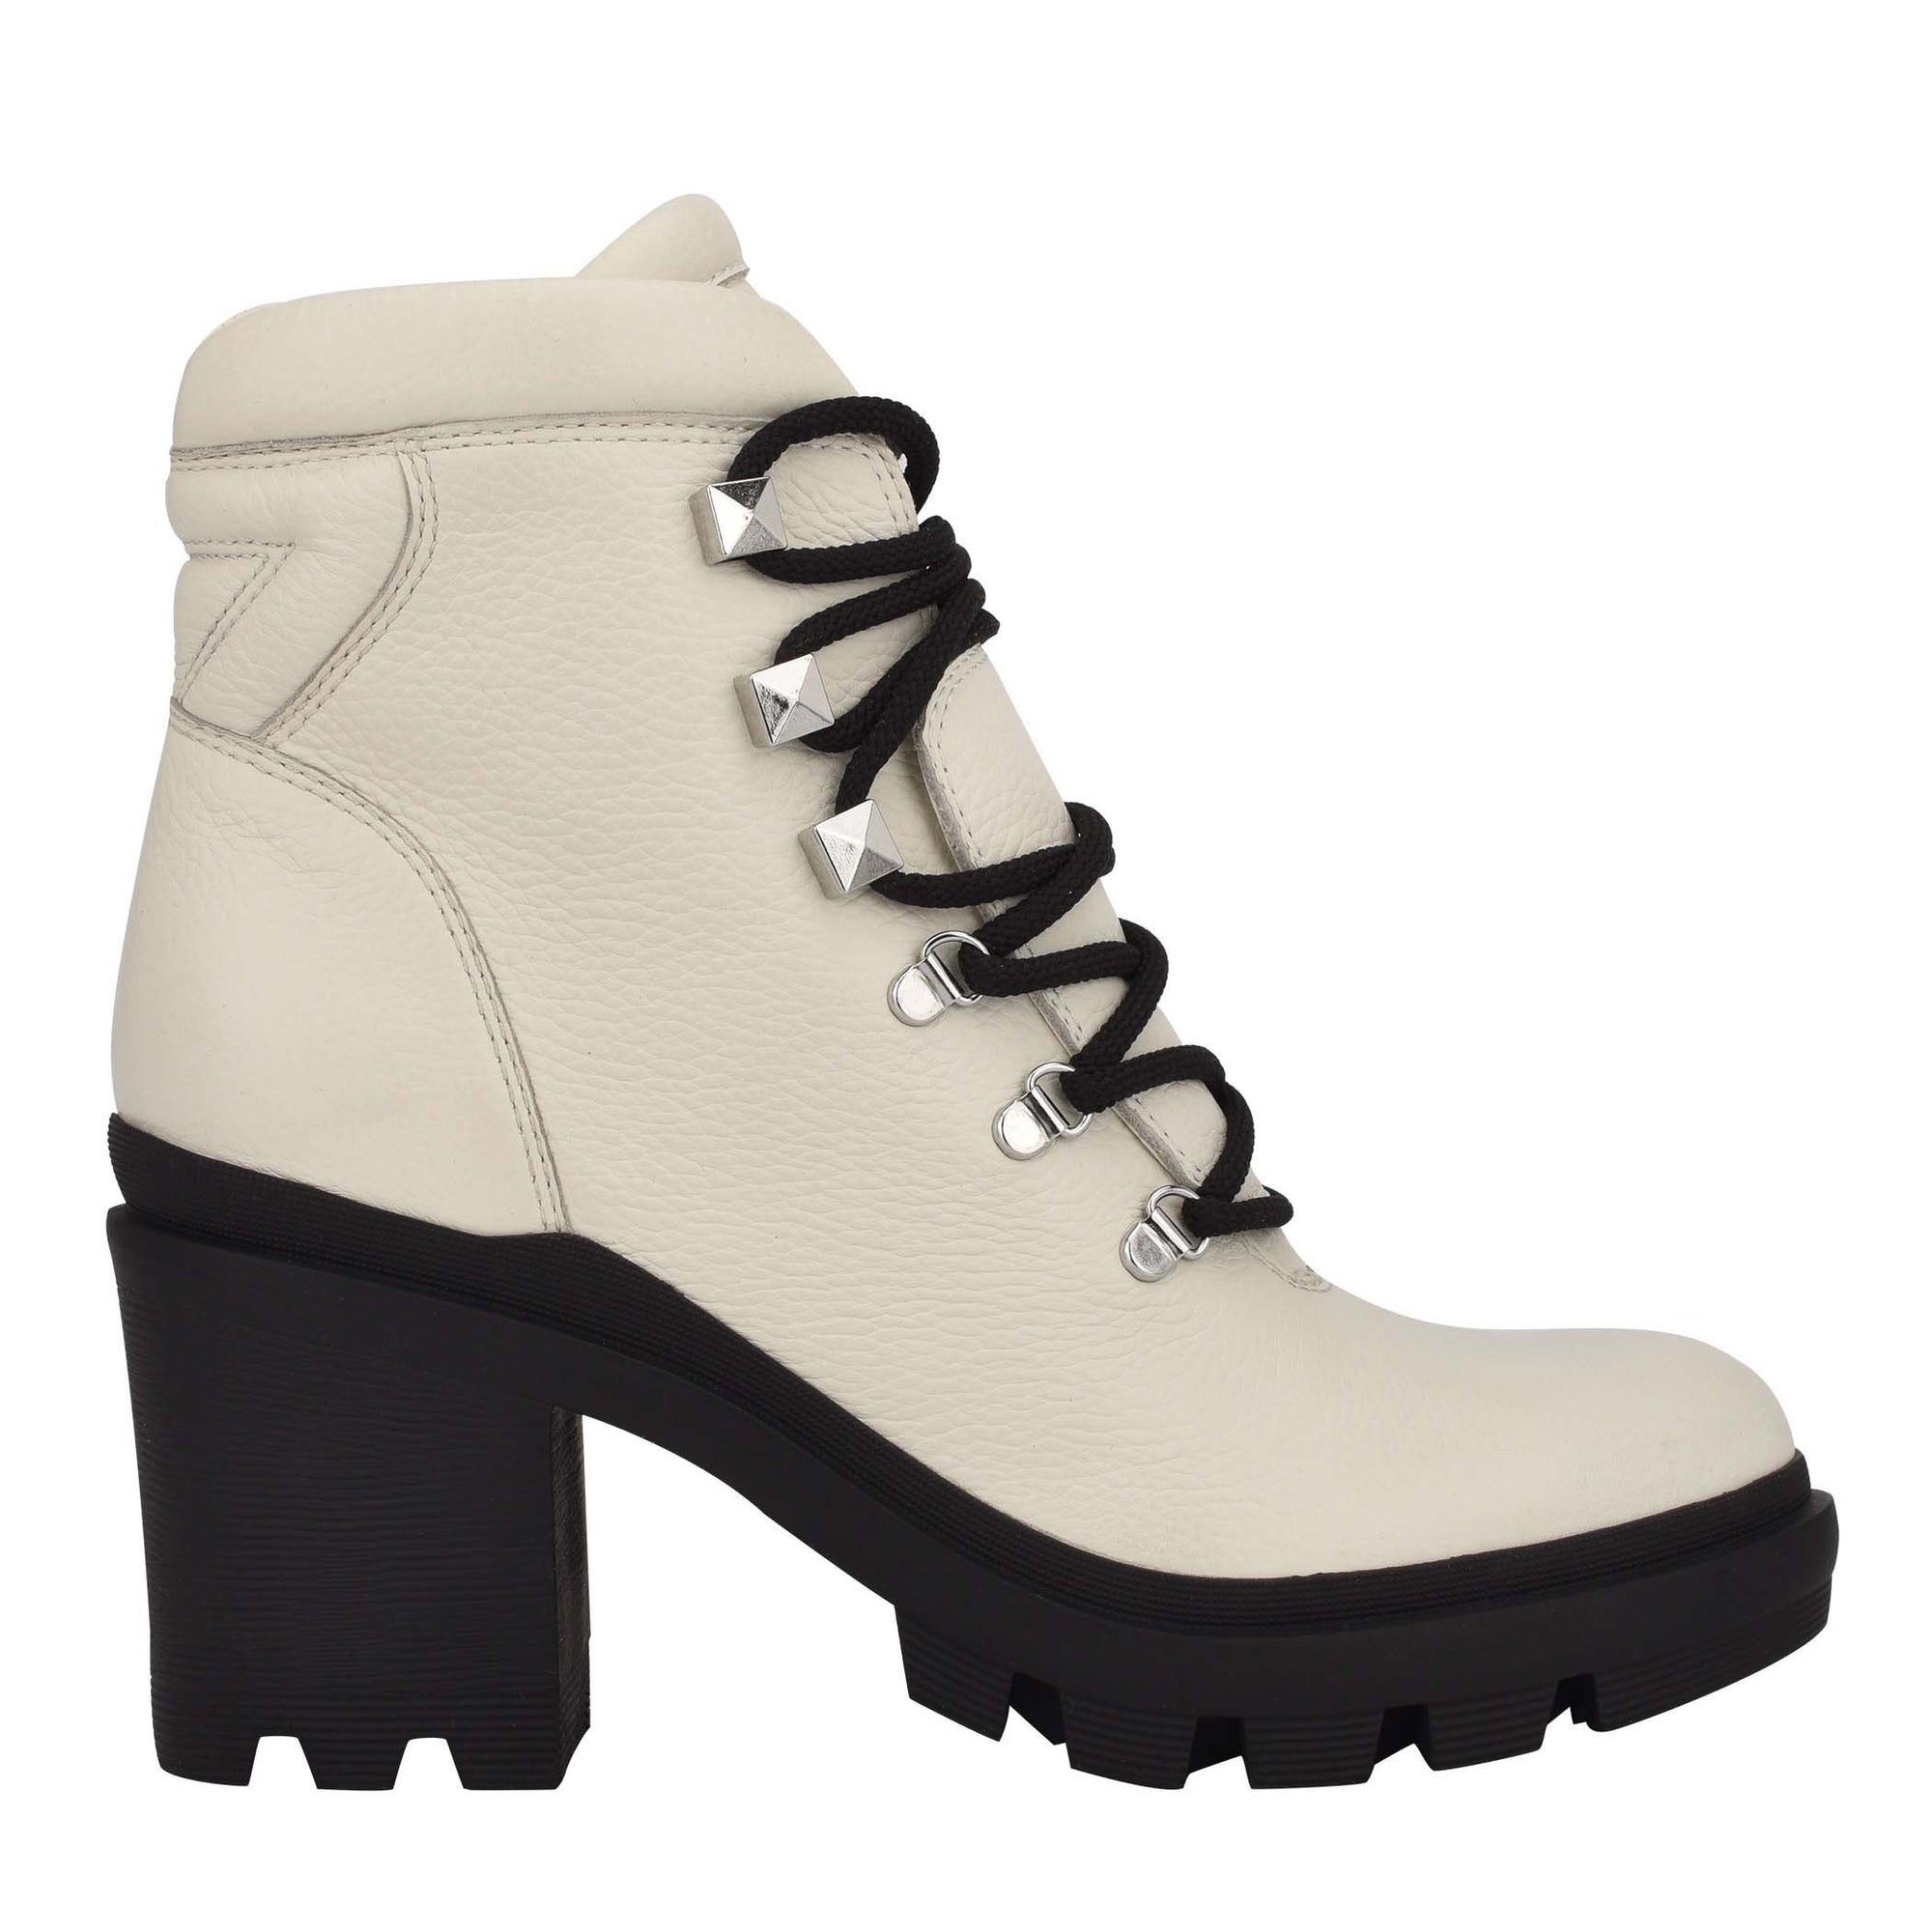 Kini Lug Sole Boot